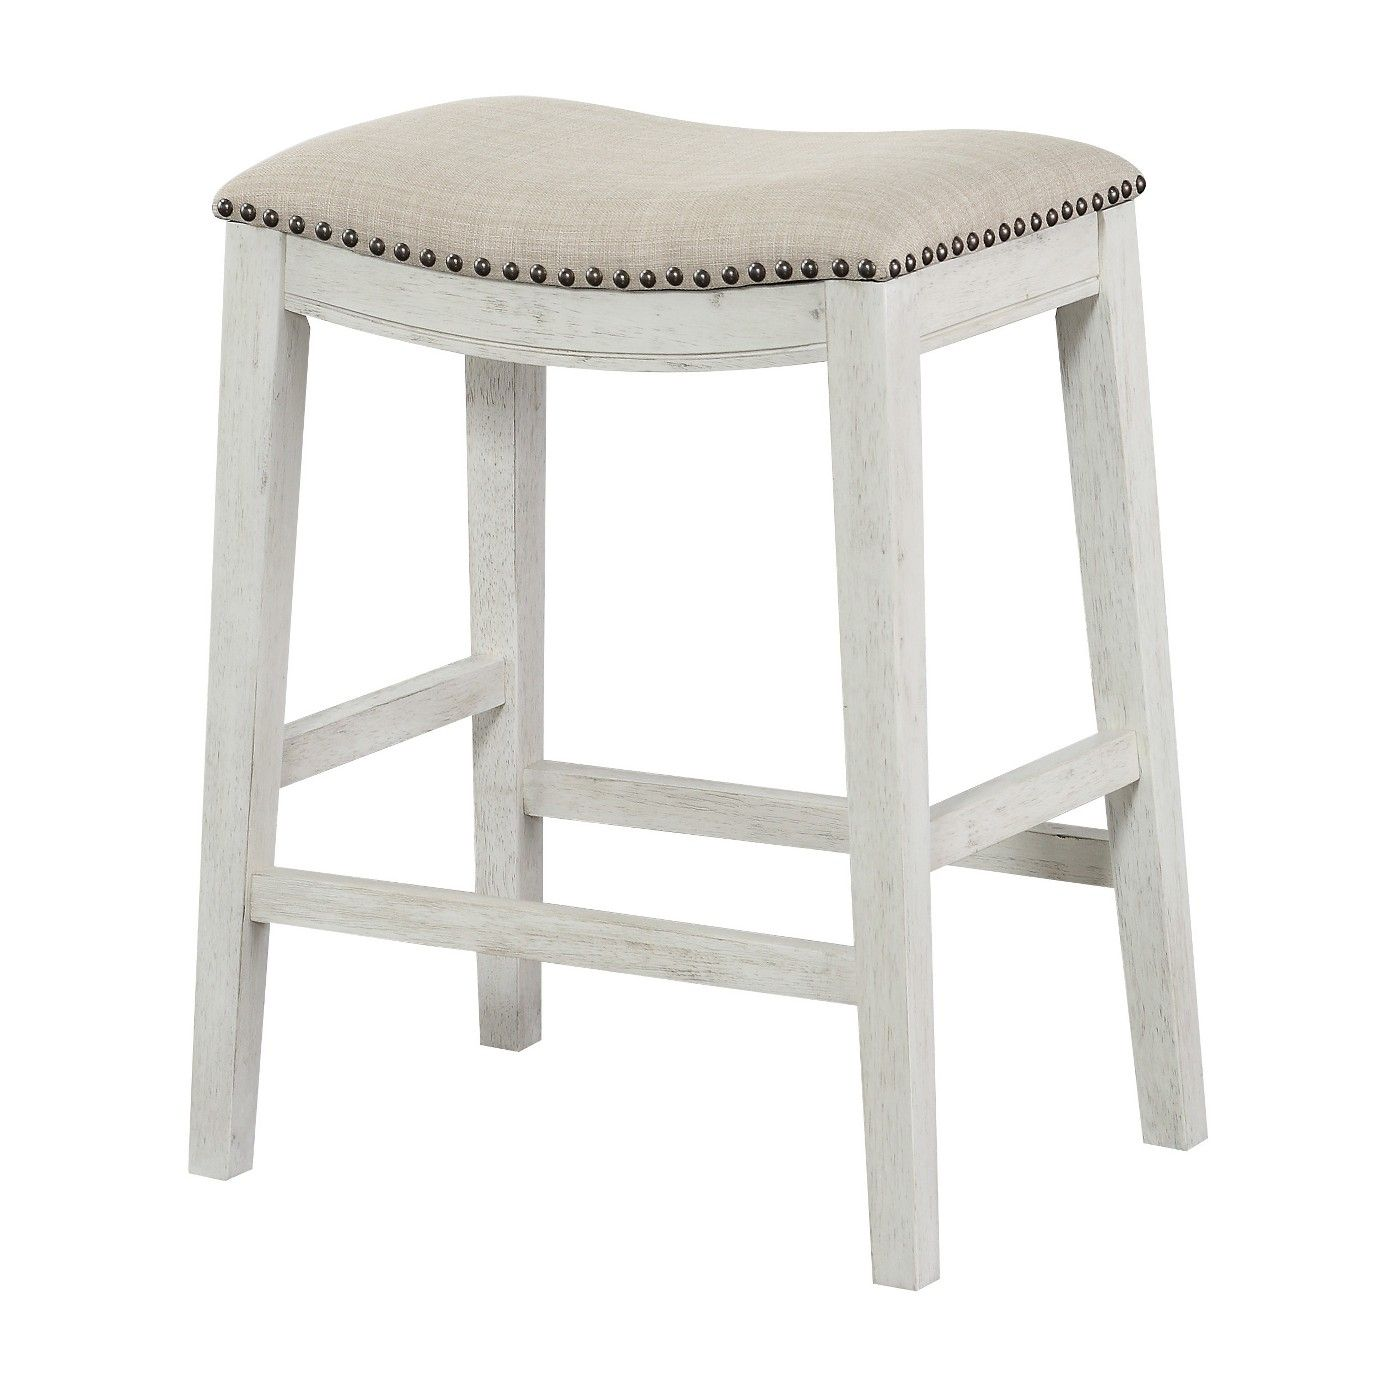 24 Saddle Stool Beige Osp Home Furnishings With Images